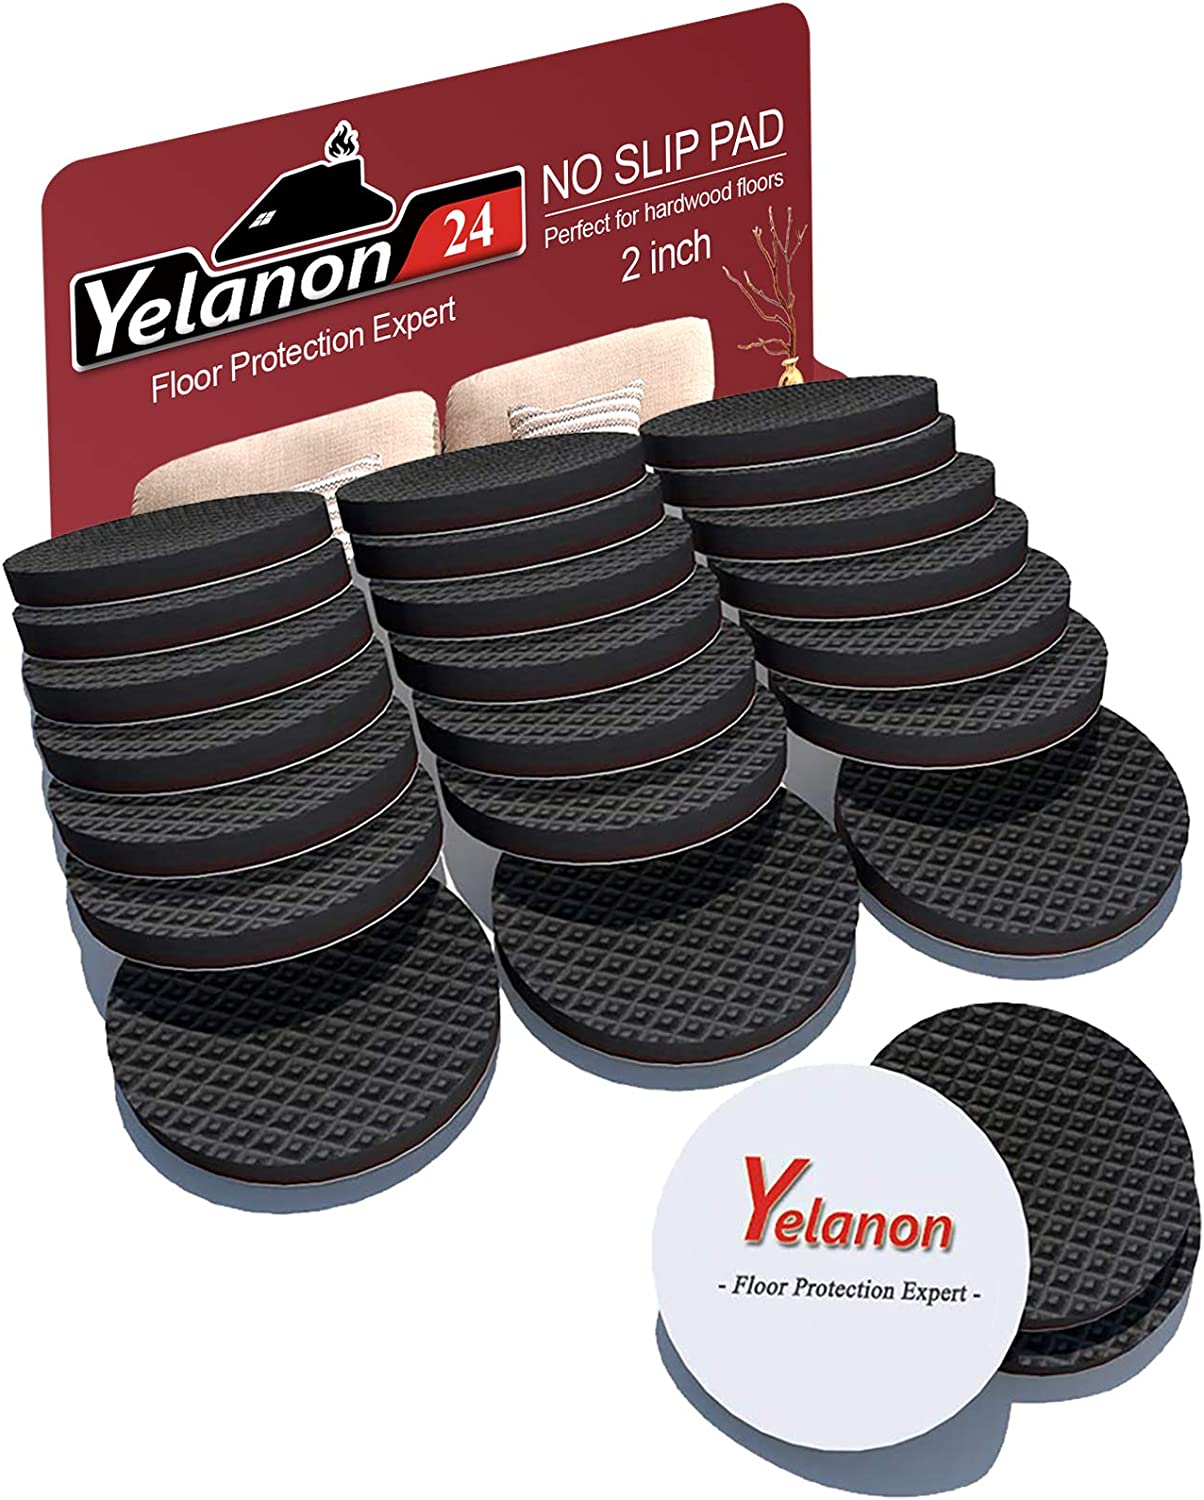 Yelanon Non Slip Furniture Pads 24 pcs Anti Skid Furniture Pads Stopper Self Adhesive Rubber Feet Wood Floor Protector for Furniture Grippers on Hardwood Floor - Protectors for Chair Legs